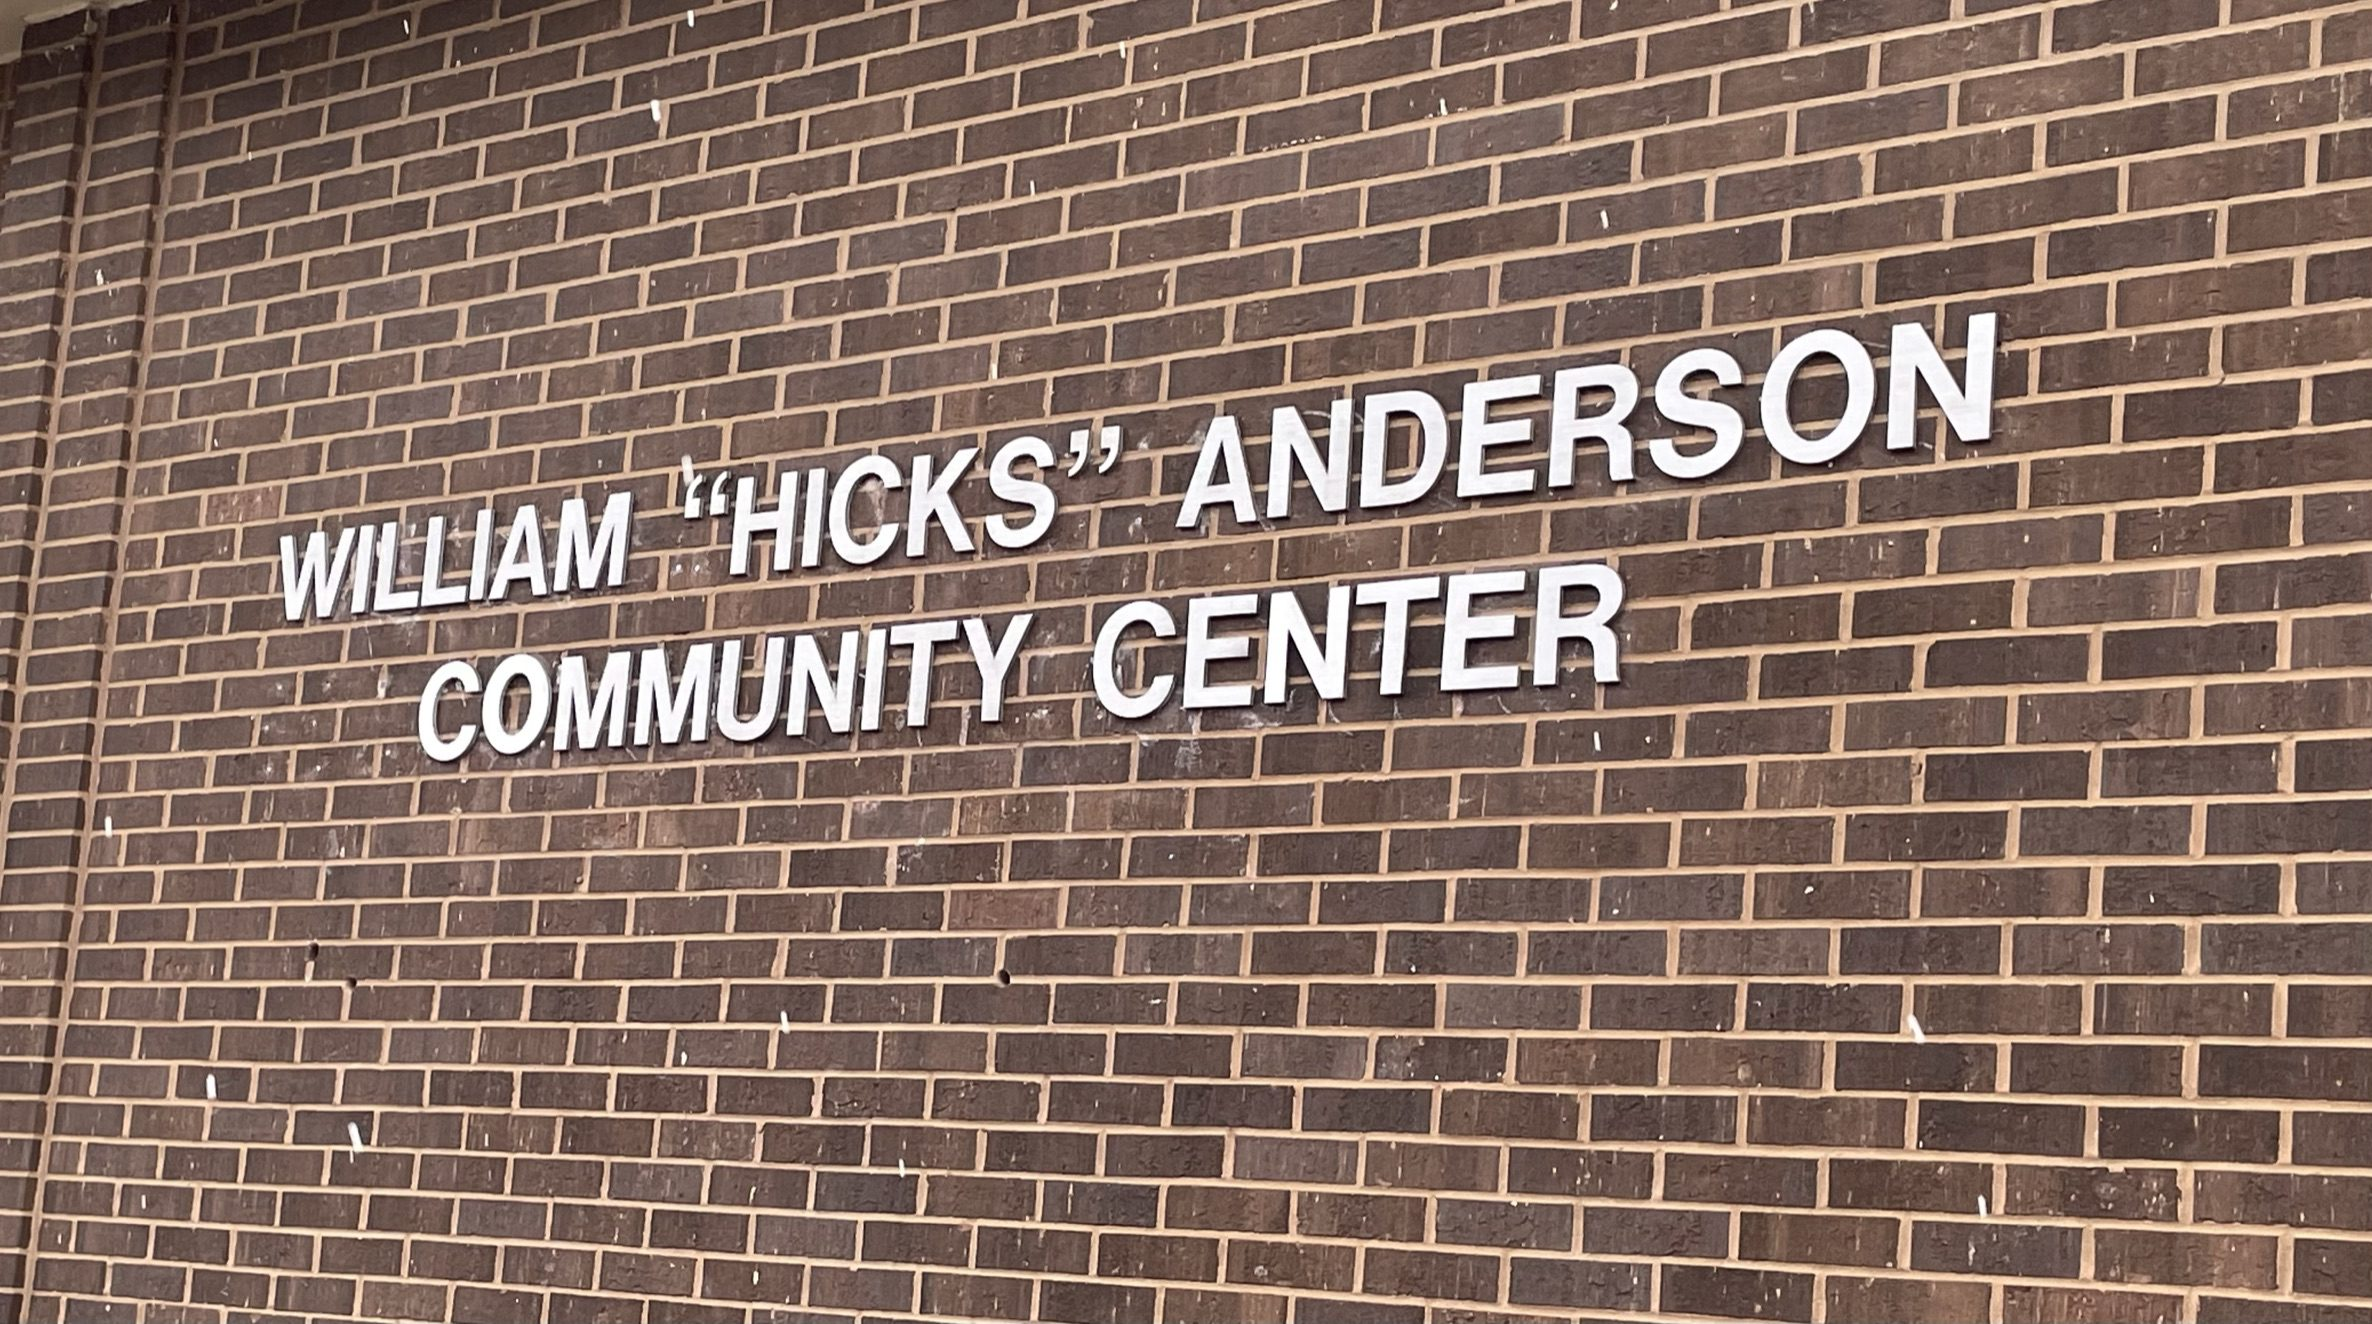 William Hicks Anderson Community Center